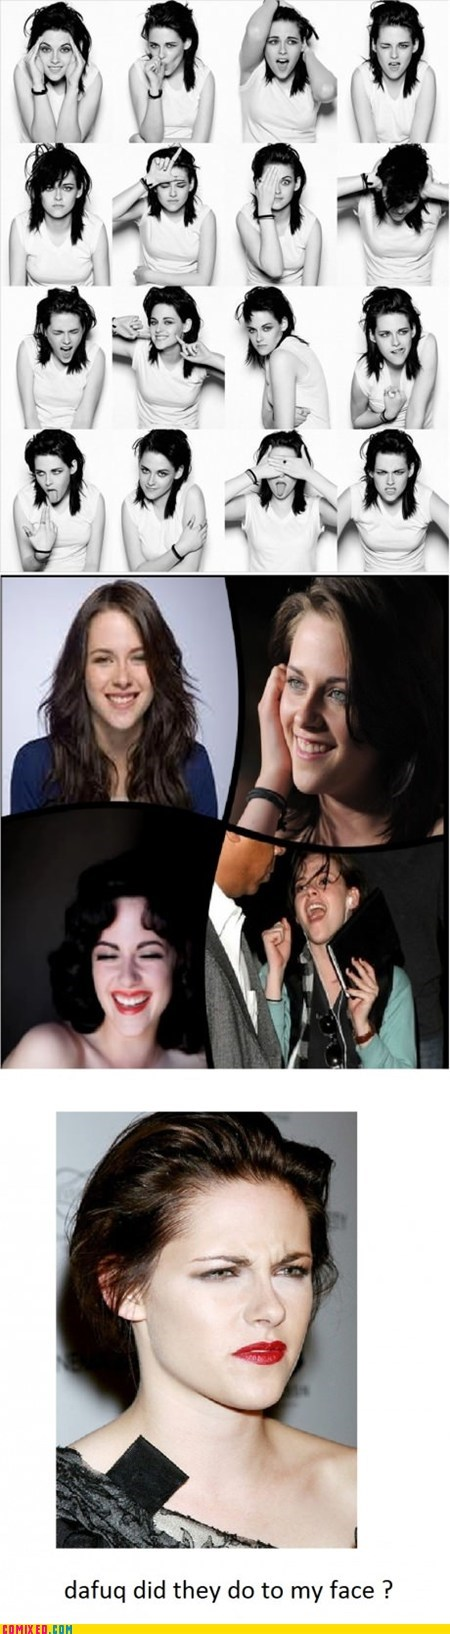 dafuq kristen stewart smiling the internets twilight